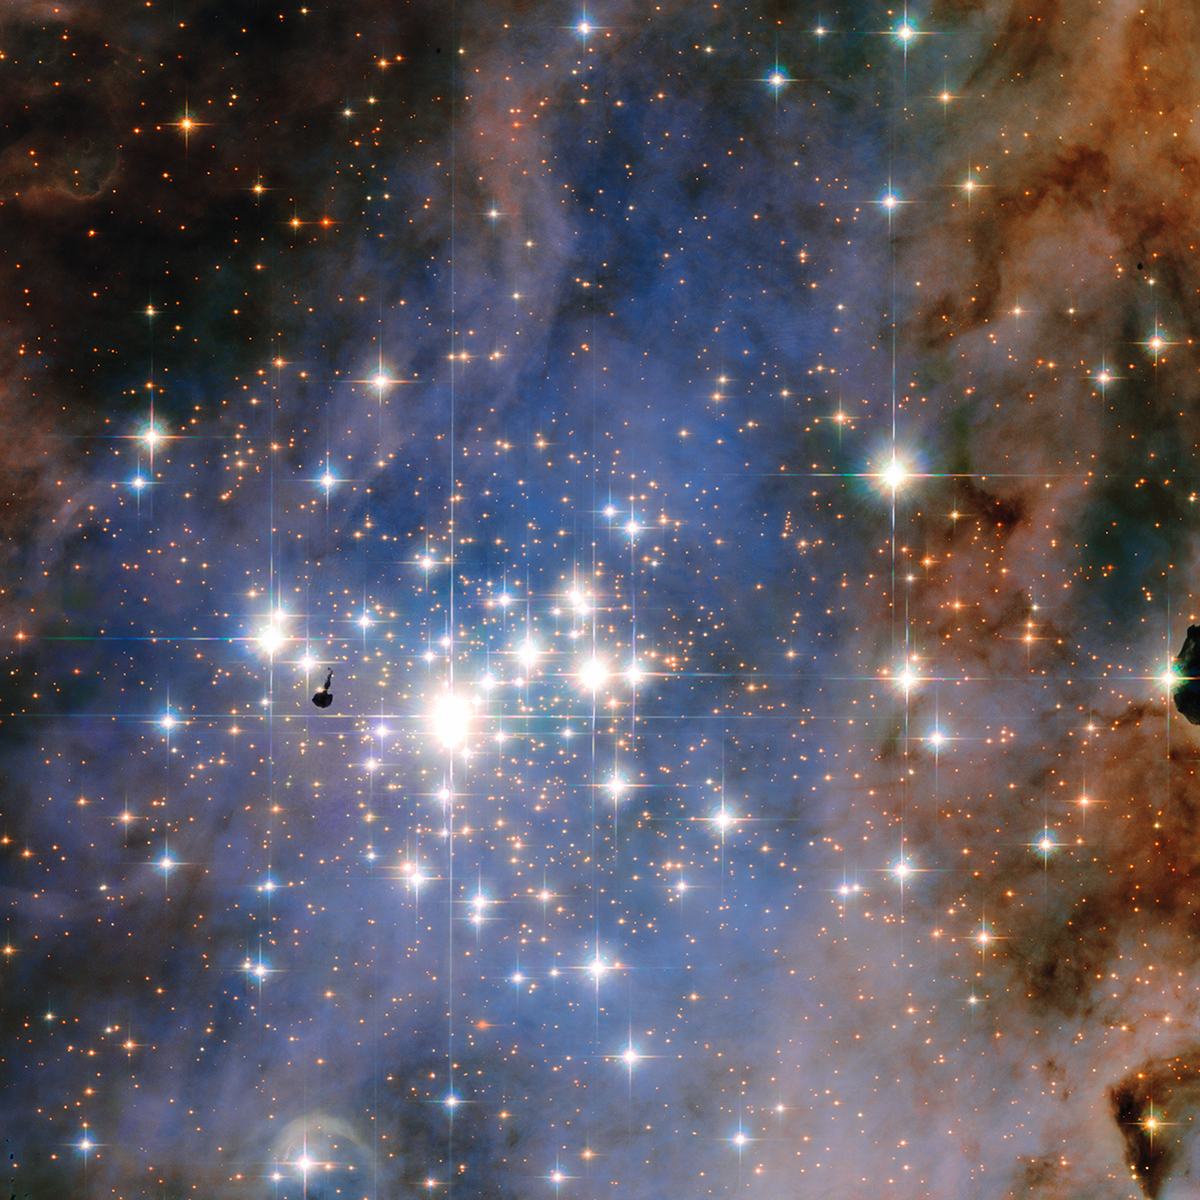 Resembling an opulent diamond tapestry, this image from NASA's Hubble Space Telescope shows a glittering star cluster that contains a collection of some of the brightest stars seen in our Milky Way galaxy. Called Trumpler 14, it is located 8,000 light-years away in the Carina Nebula, a huge star-formation region. Image Credit: NASA, ESA, and J. Maíz Apellániz (Institute of Astrophysics of Andalusia, Spain)